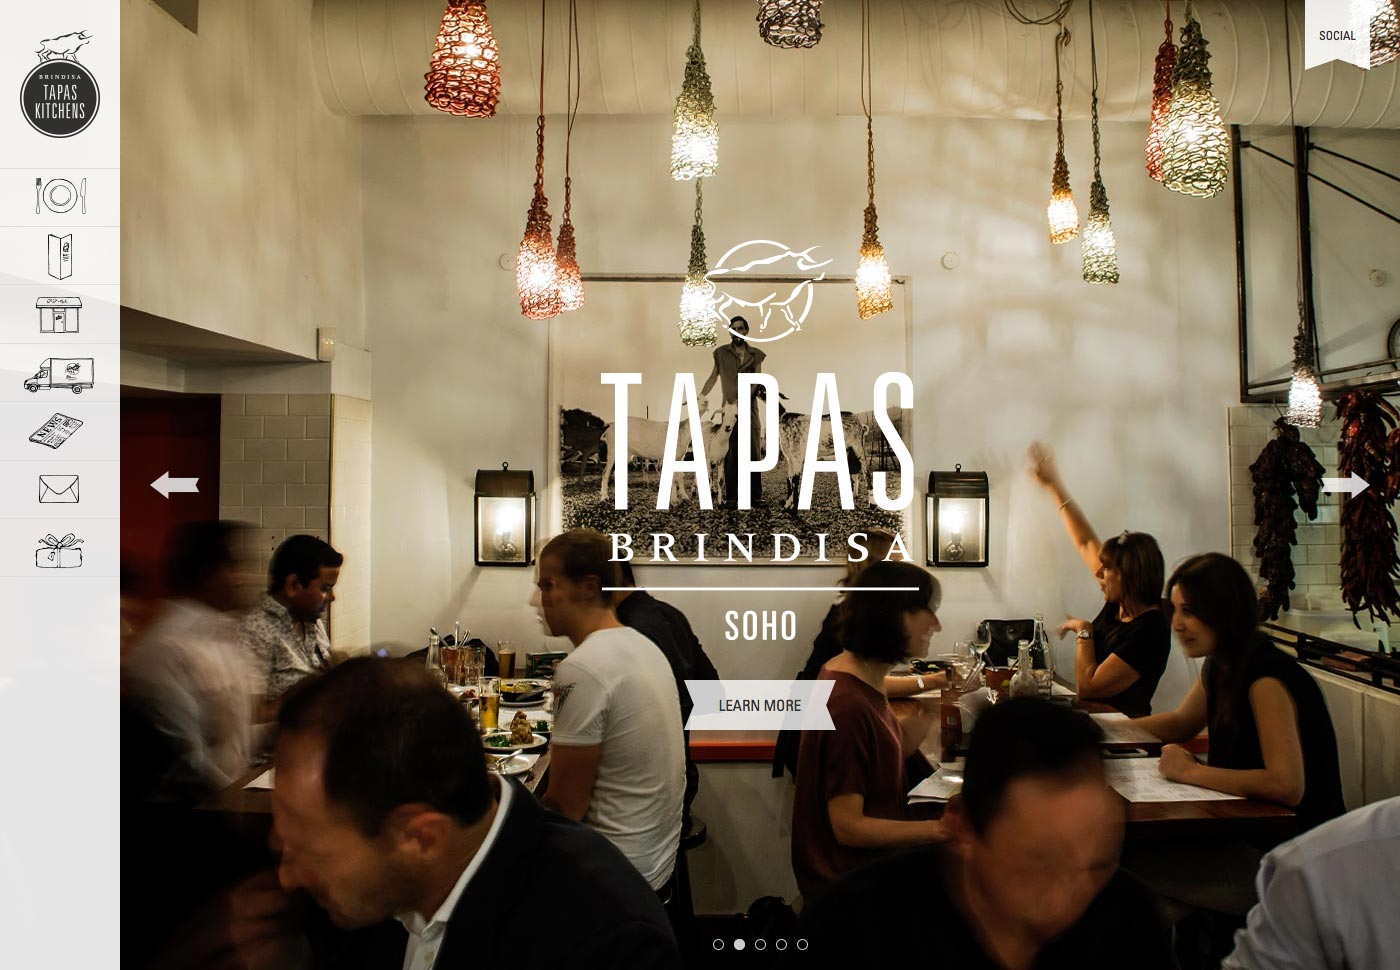 Brindisa Tapas Kitchens